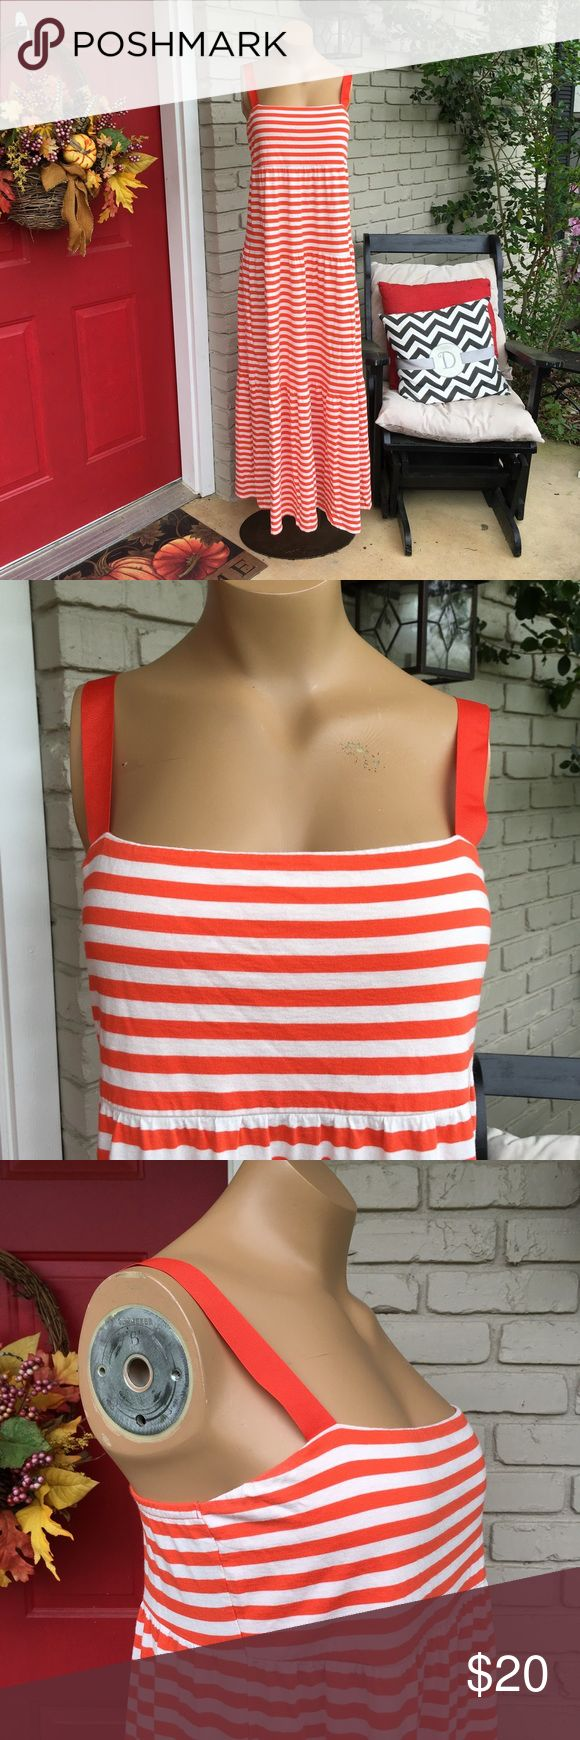 Old Navy orange white stripe maxi dress Orange white striped maxi dress with orange ribbon straps. So cute and Summery! Old Navy Dresses Maxi